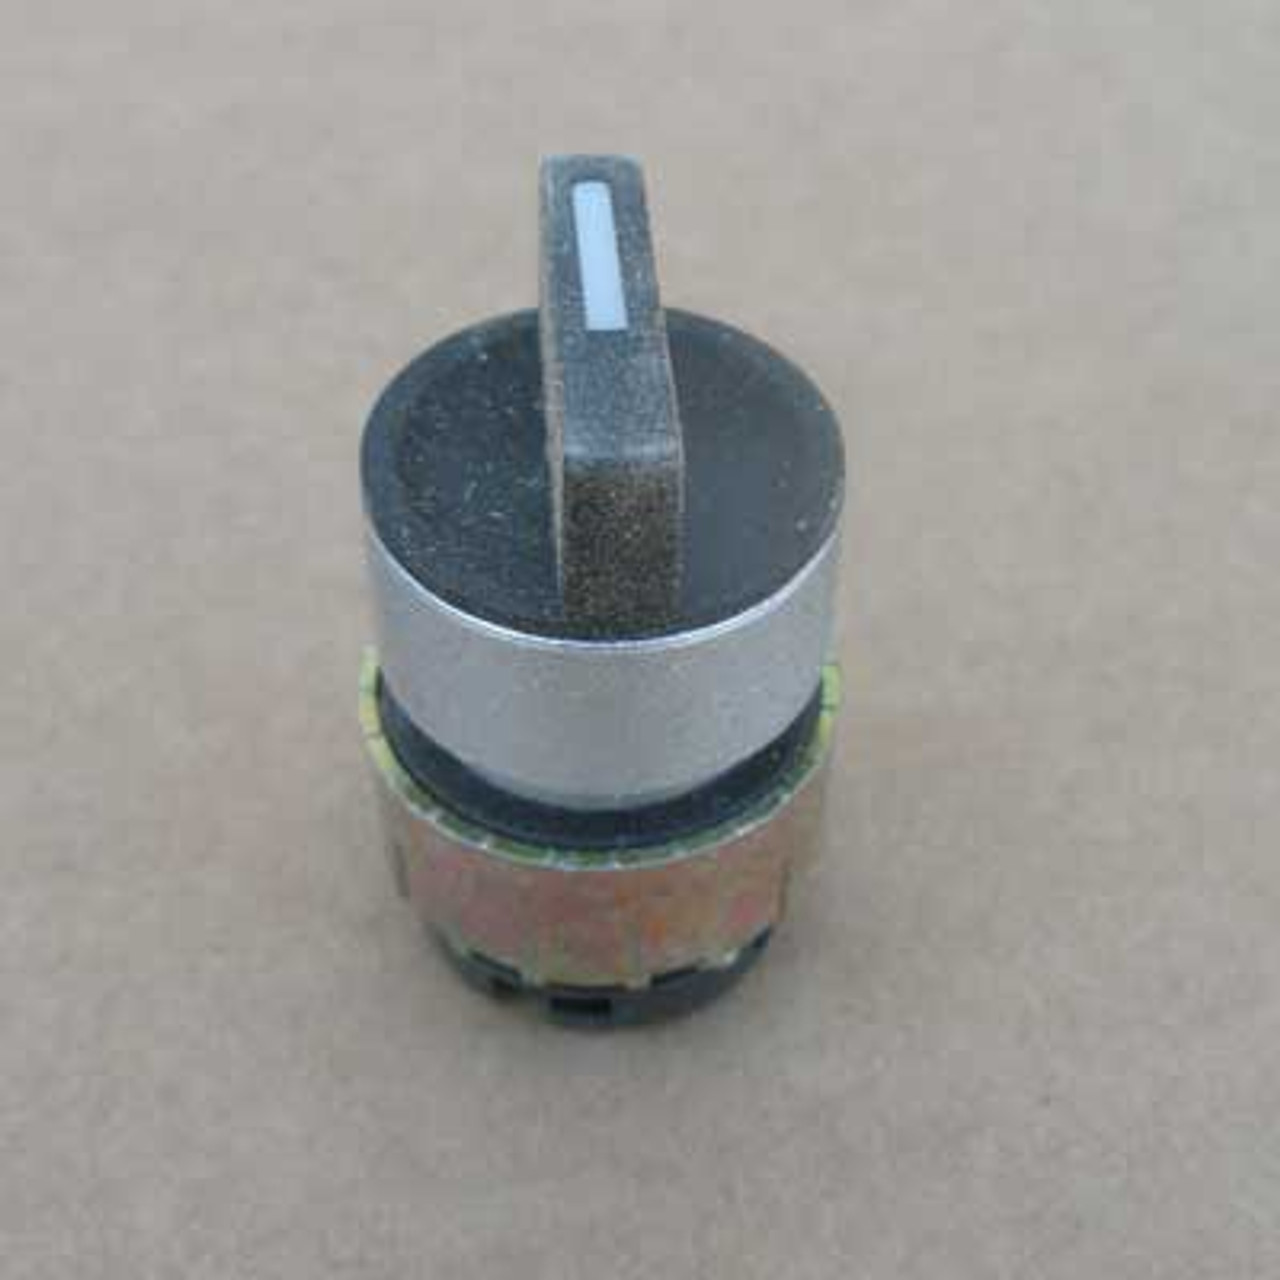 General Electric 080SMBNRC 3 Position Knob Select Switch